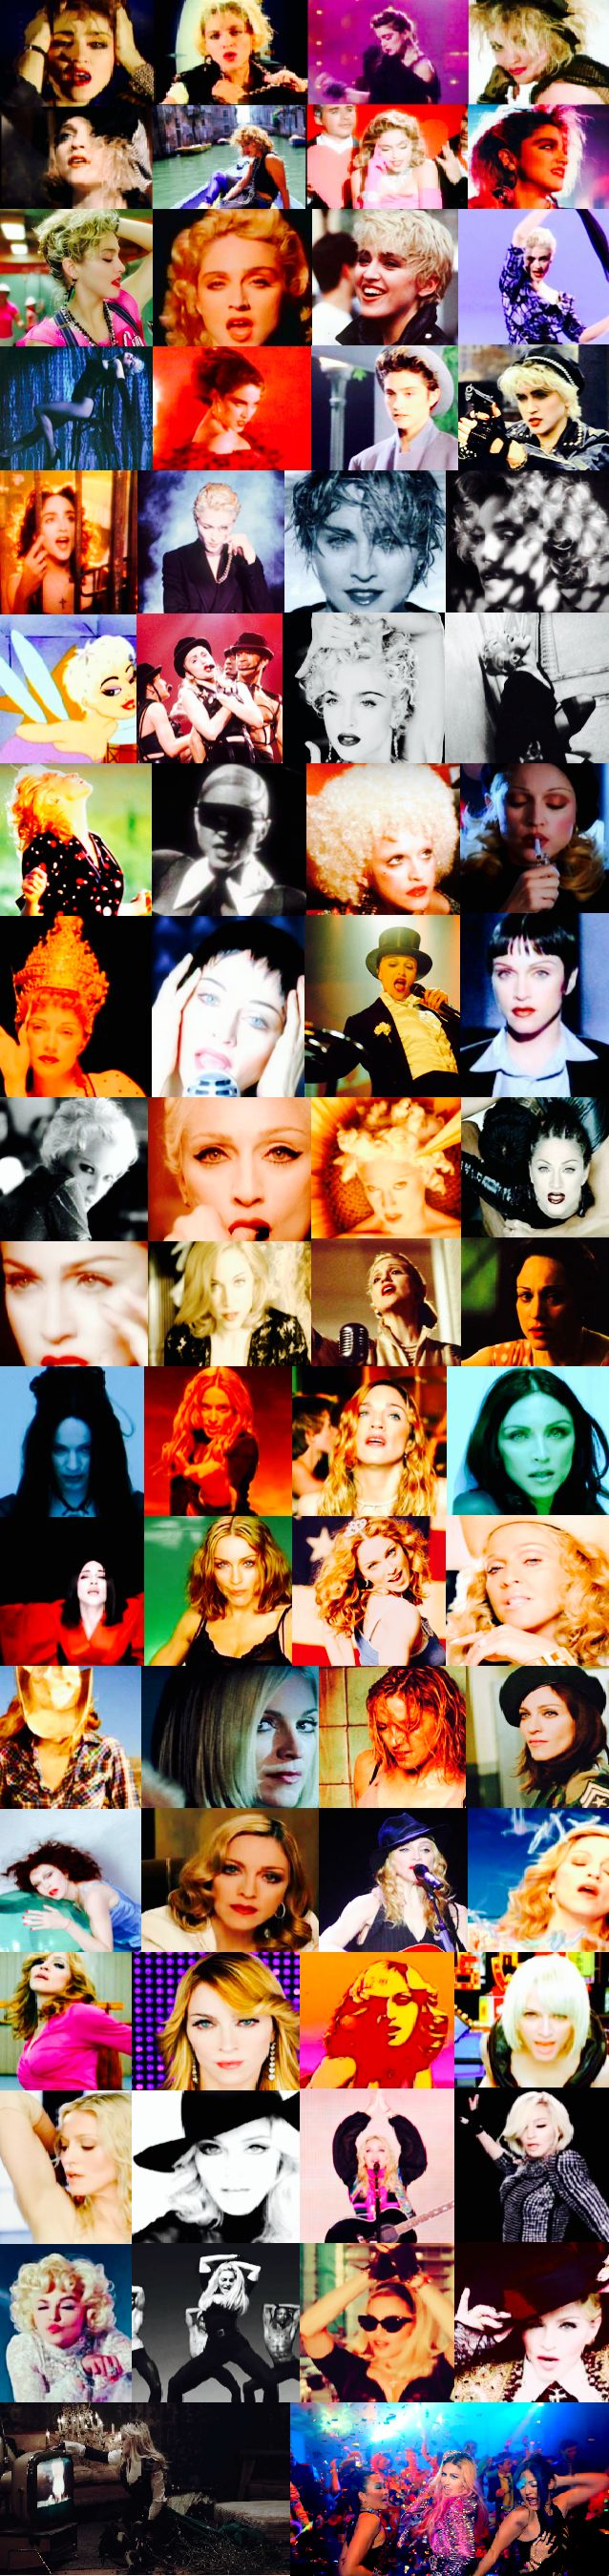 Madonna | photo collage